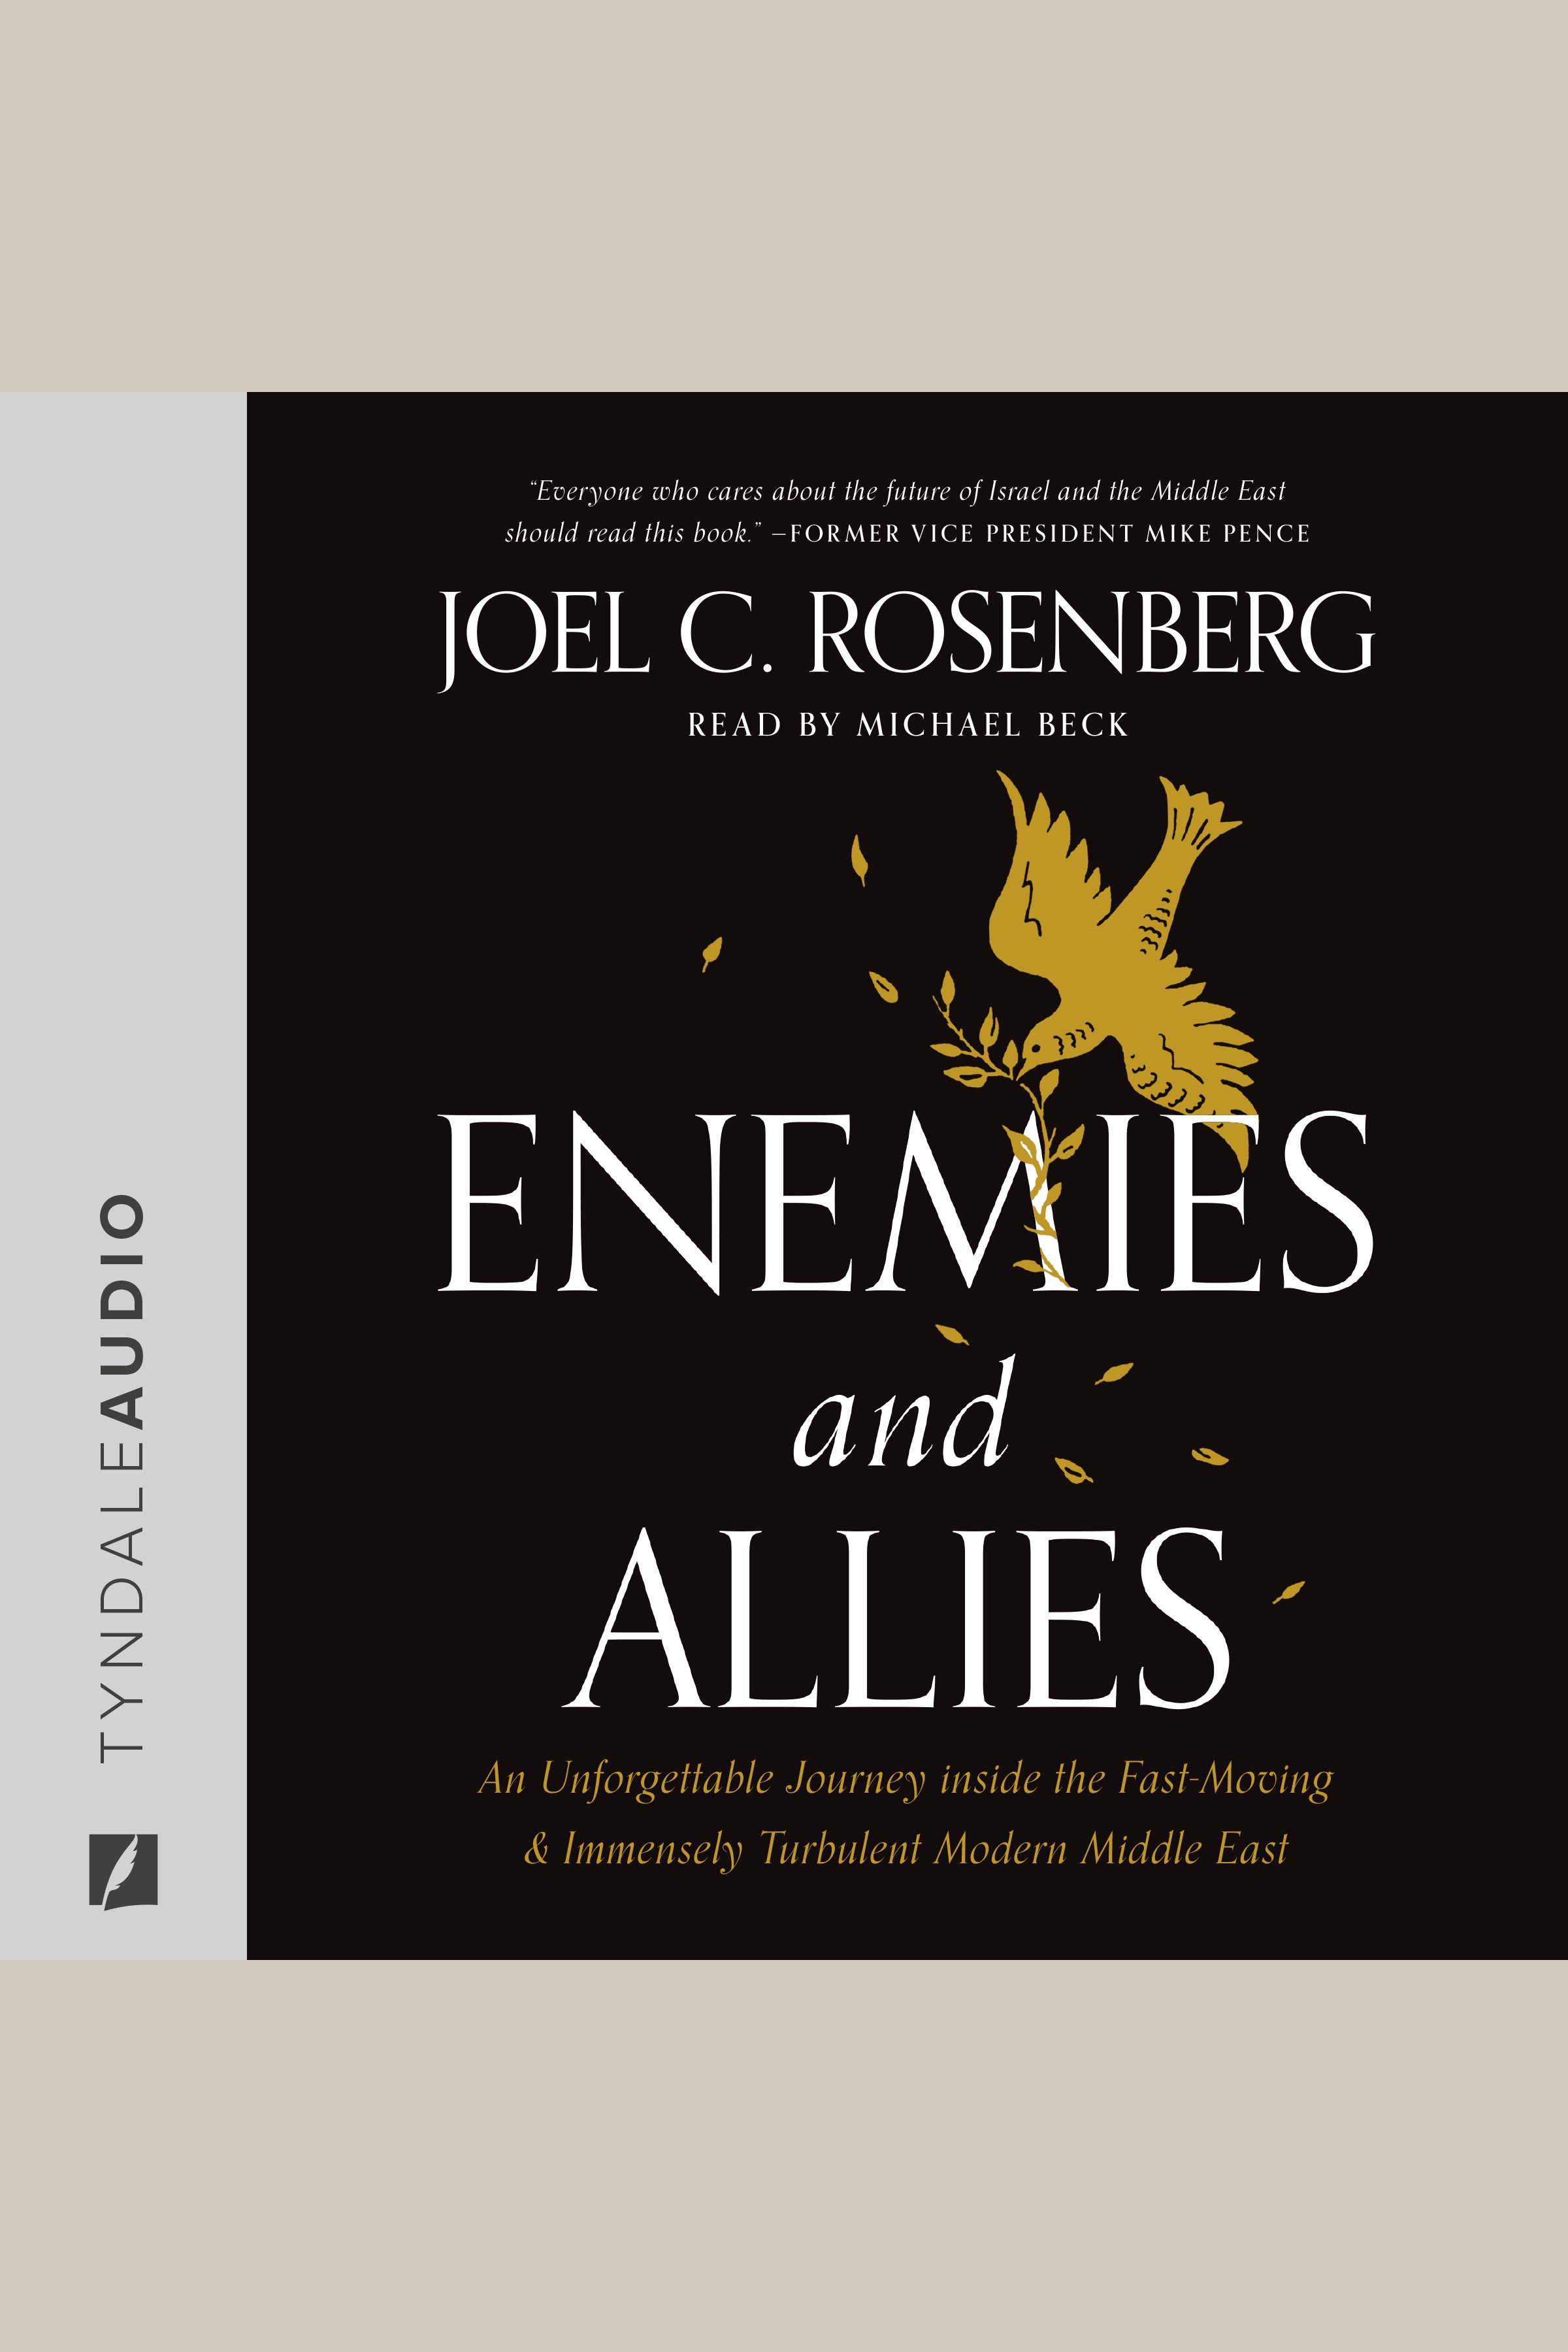 Enemies and Allies An Unforgettable Journey inside the Fast-Moving & Immensely Turbulent Modern Middle East